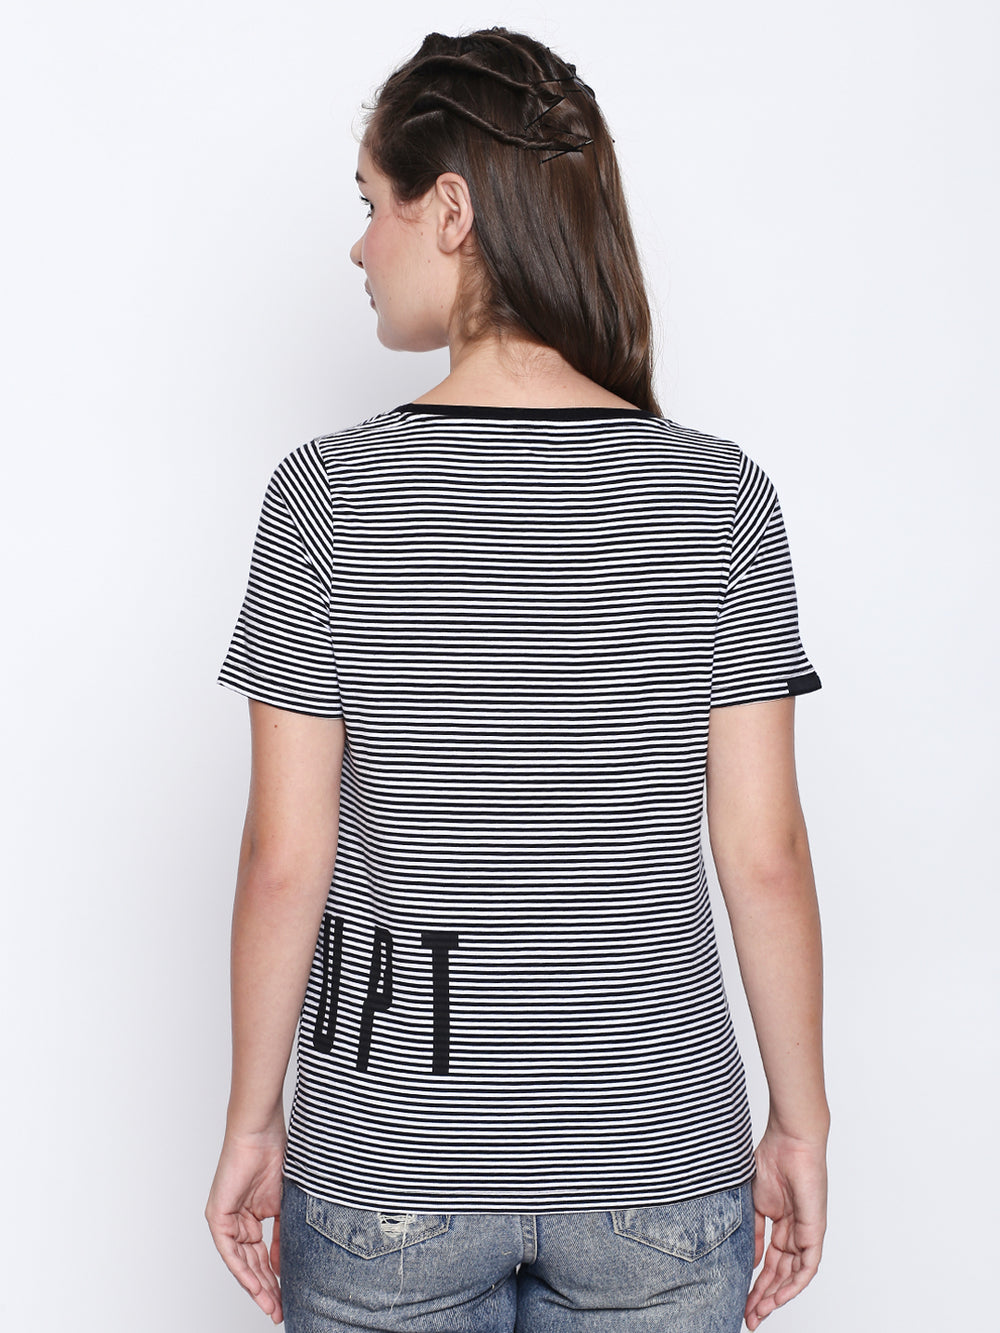 Black N White Horizontal Stripe T-Shirt For Women's